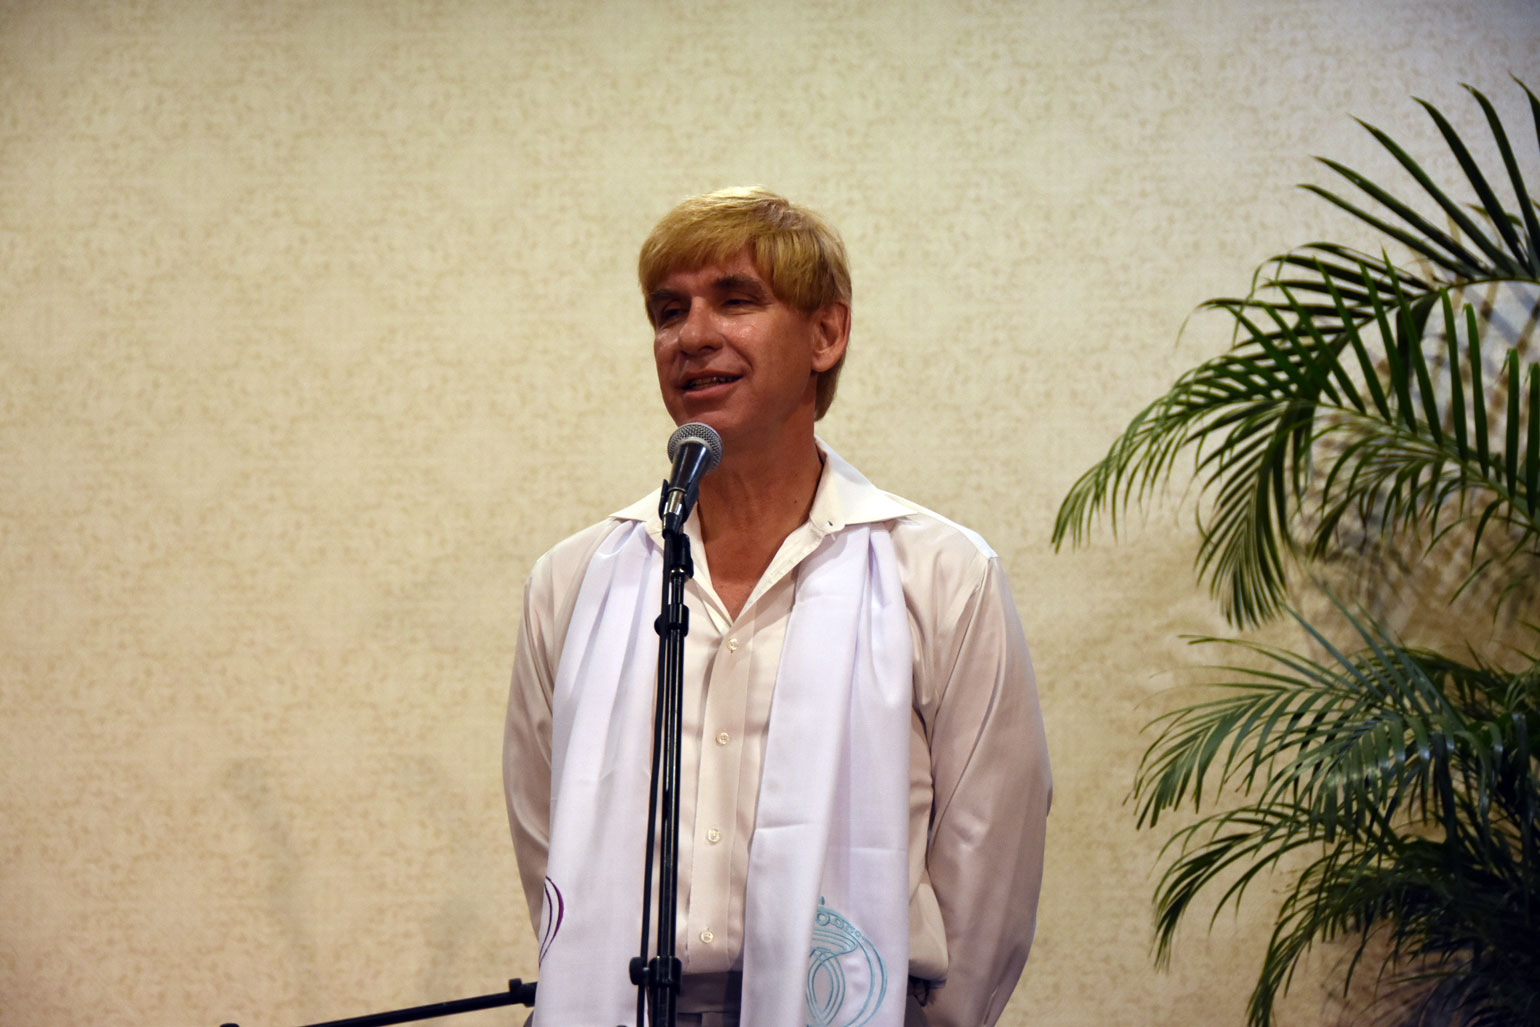 Dr. Todd Ovokaitys